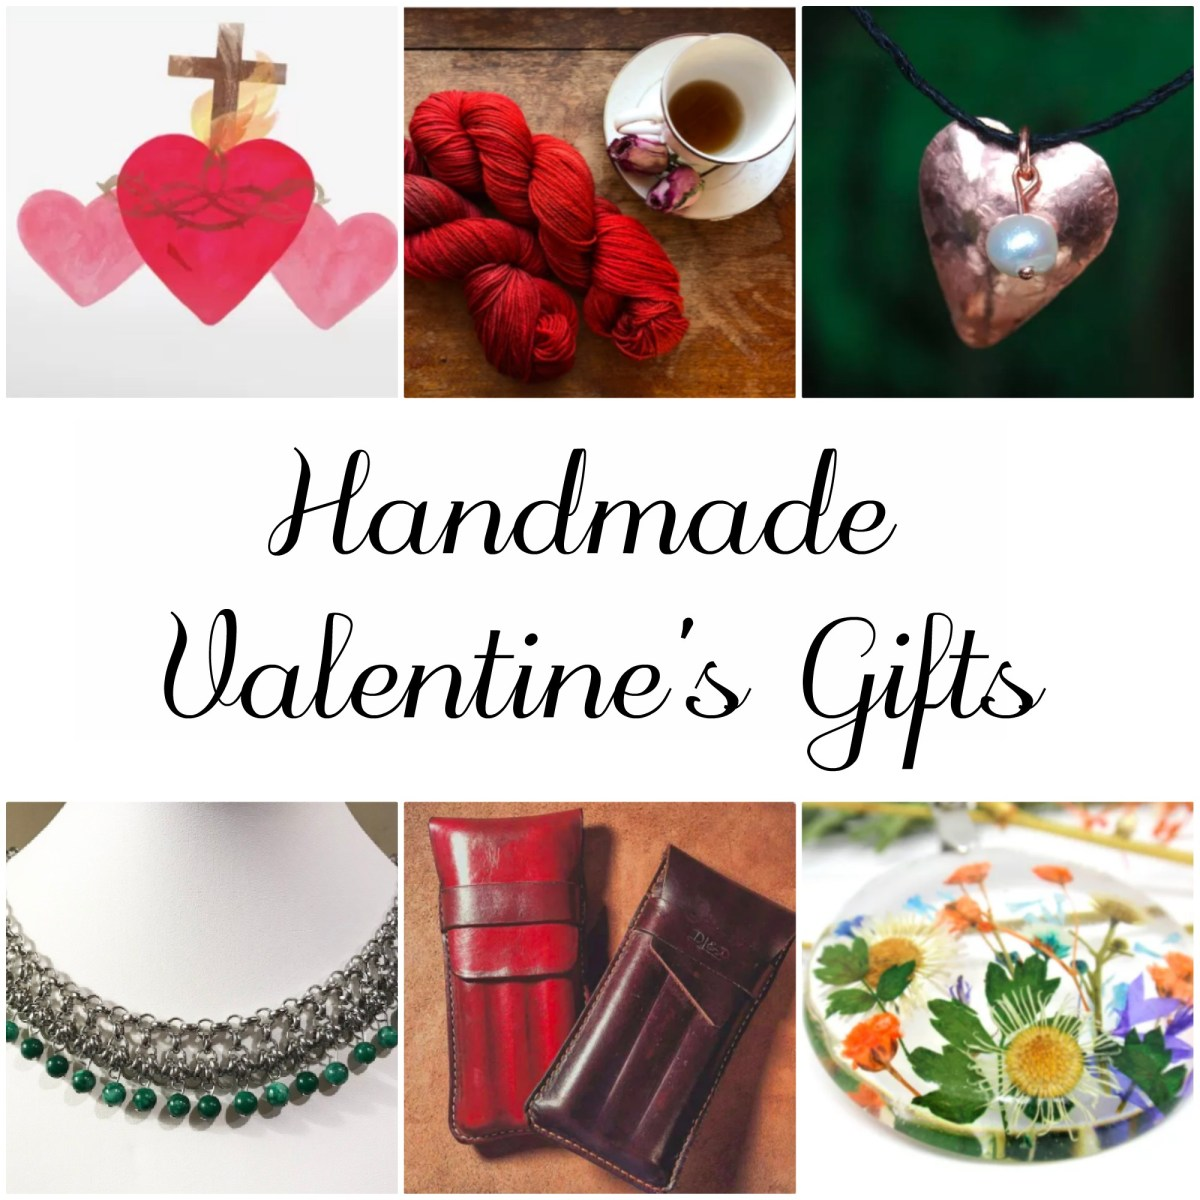 ead9e39c0222 Handmade Gift Guide for Valentine s Day